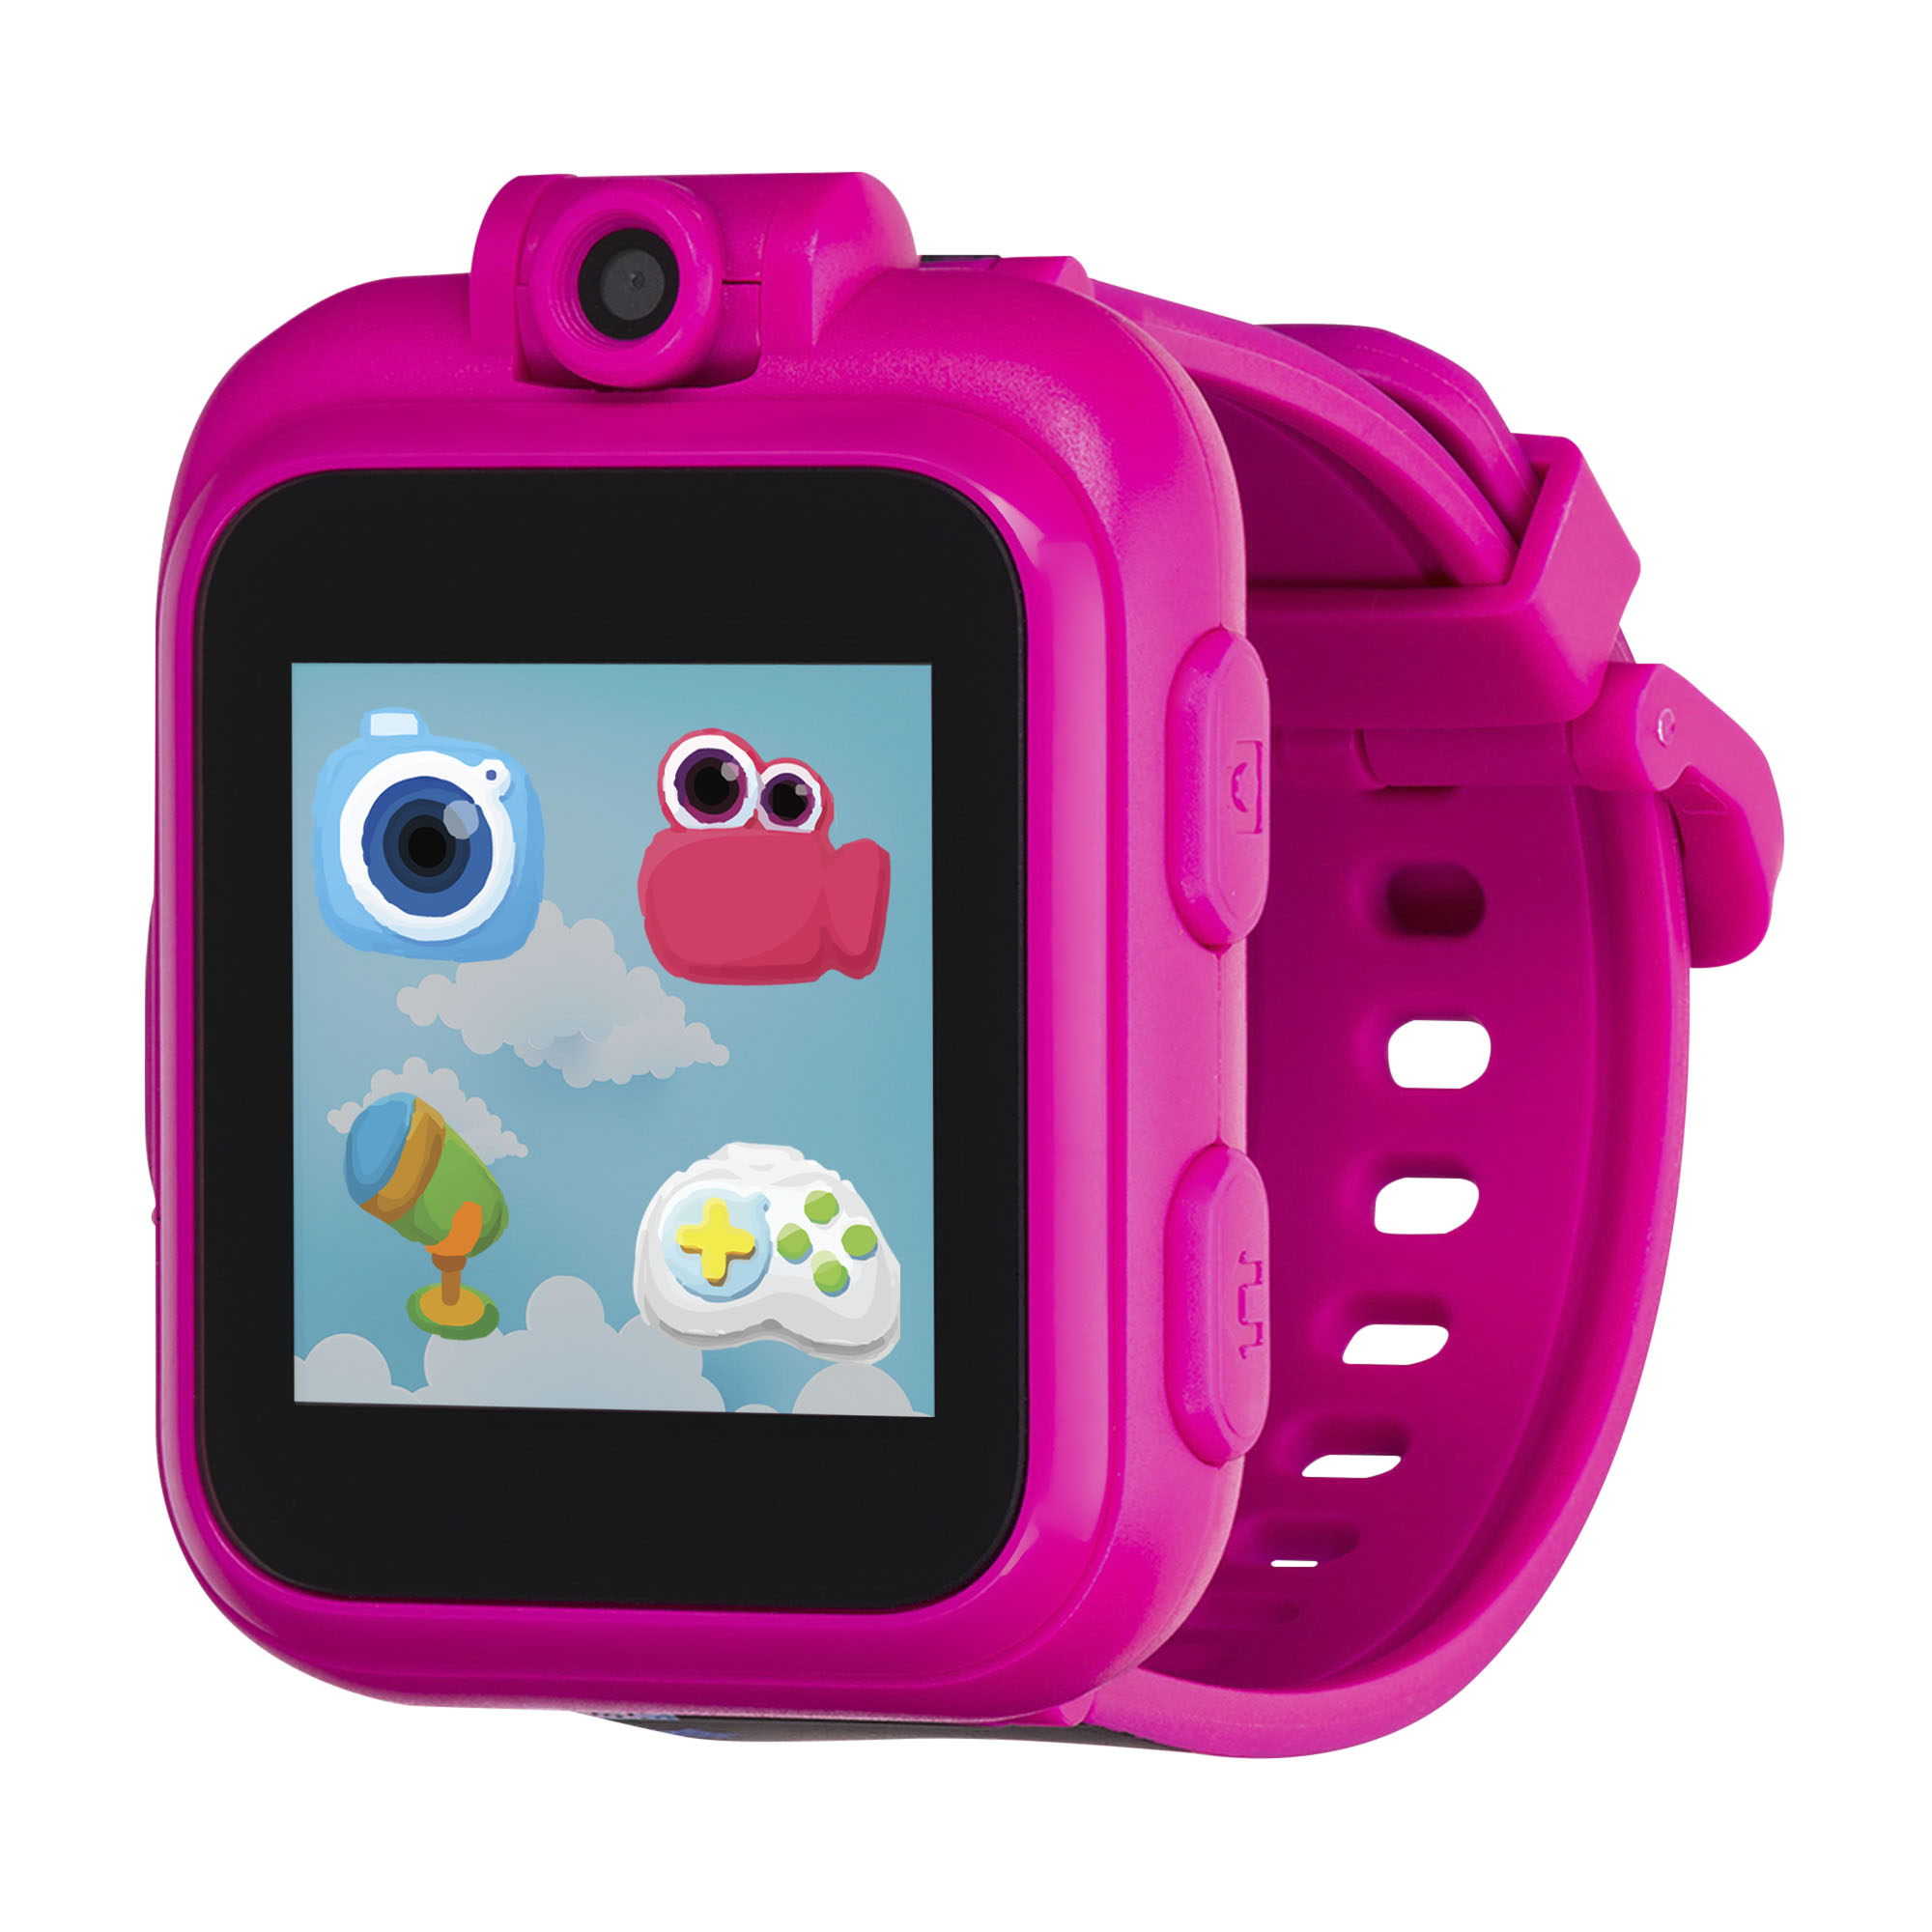 iTech Jr Kids Smartwatch NIB Choose From 6 Different Colored Bands for boy//girl